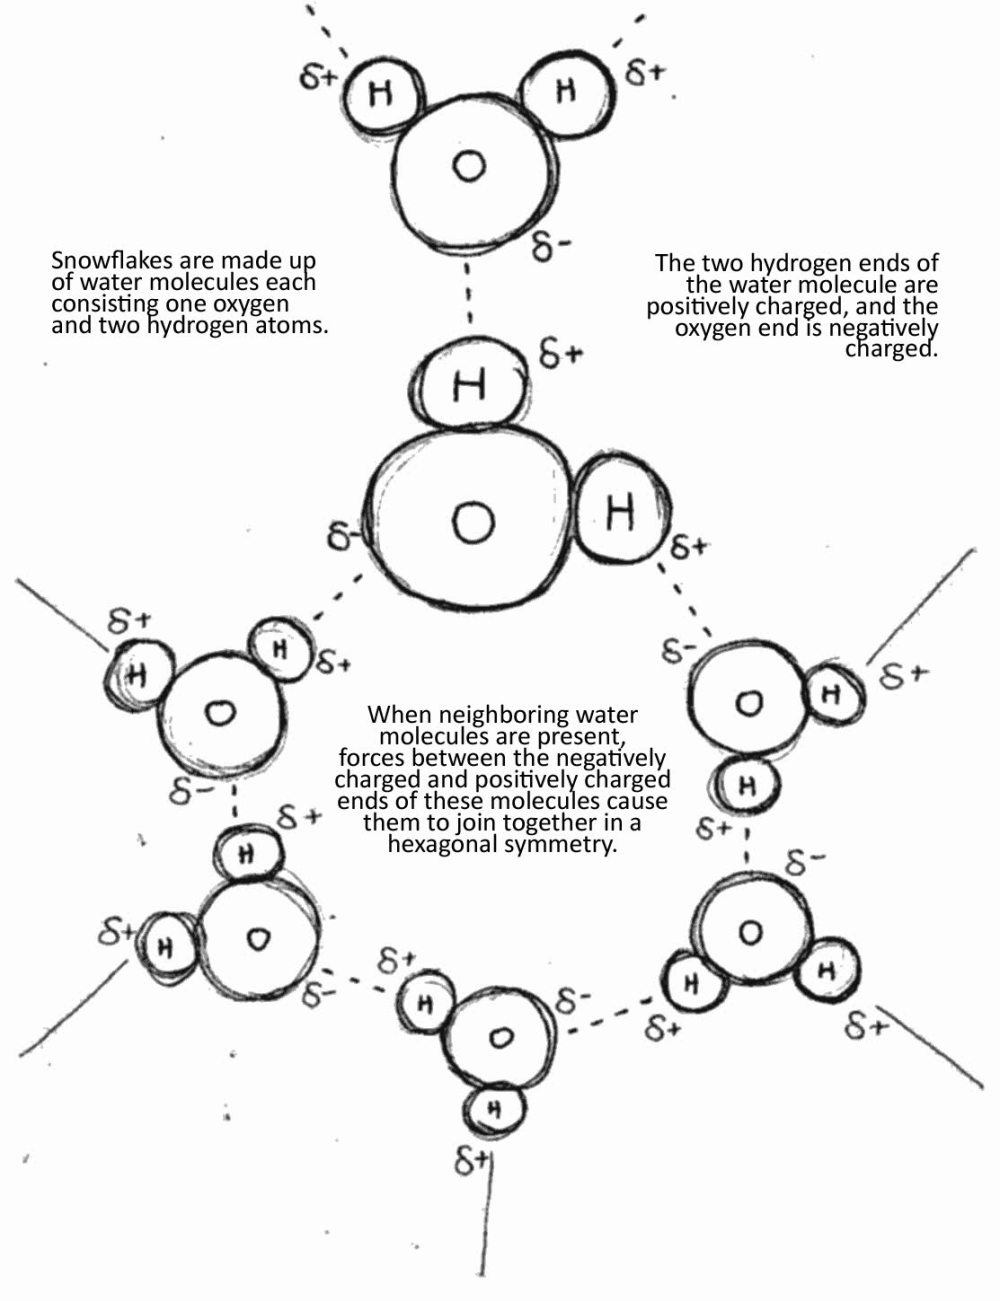 medium resolution of crystal structure of snowflakes formed from hydrogen bonds between the water molecules